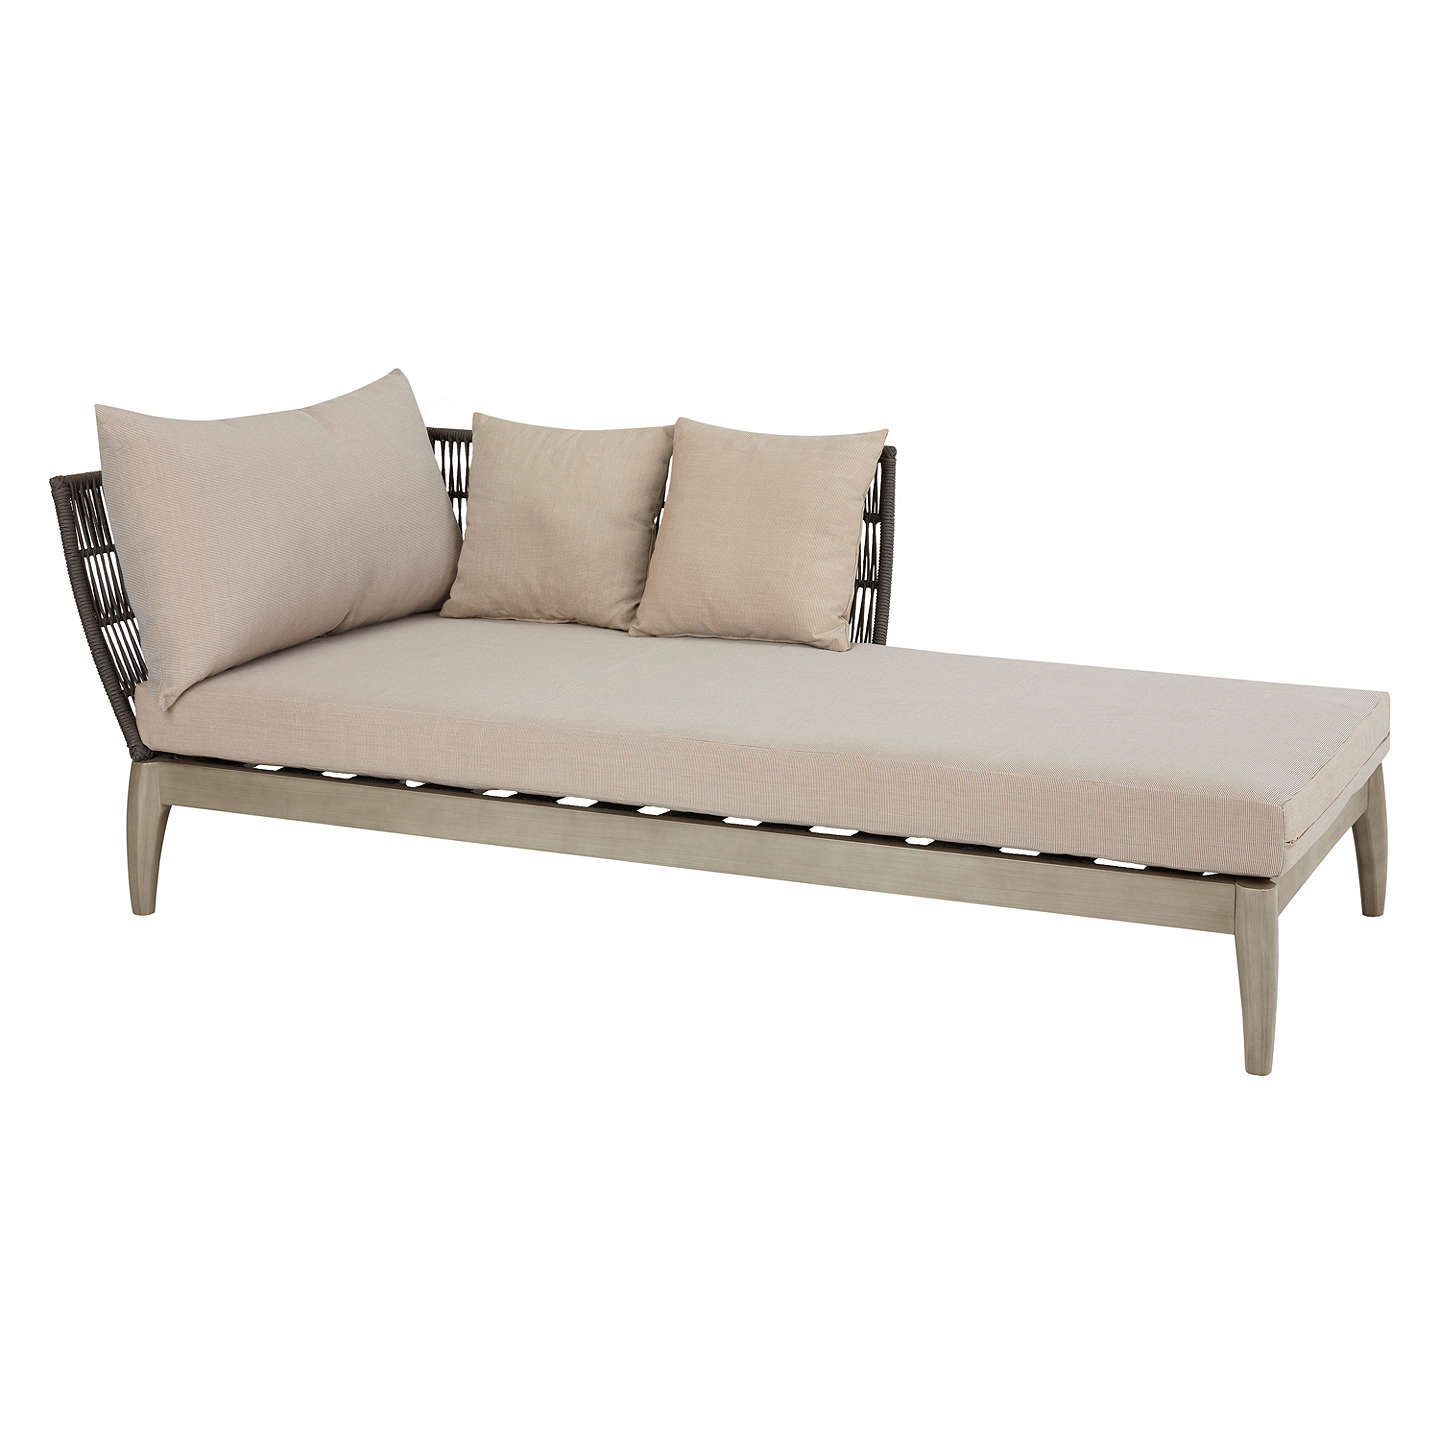 BuyJohn Lewis Ariel Garden Chaise Lounging Chair Online At Johnlewis.com ...